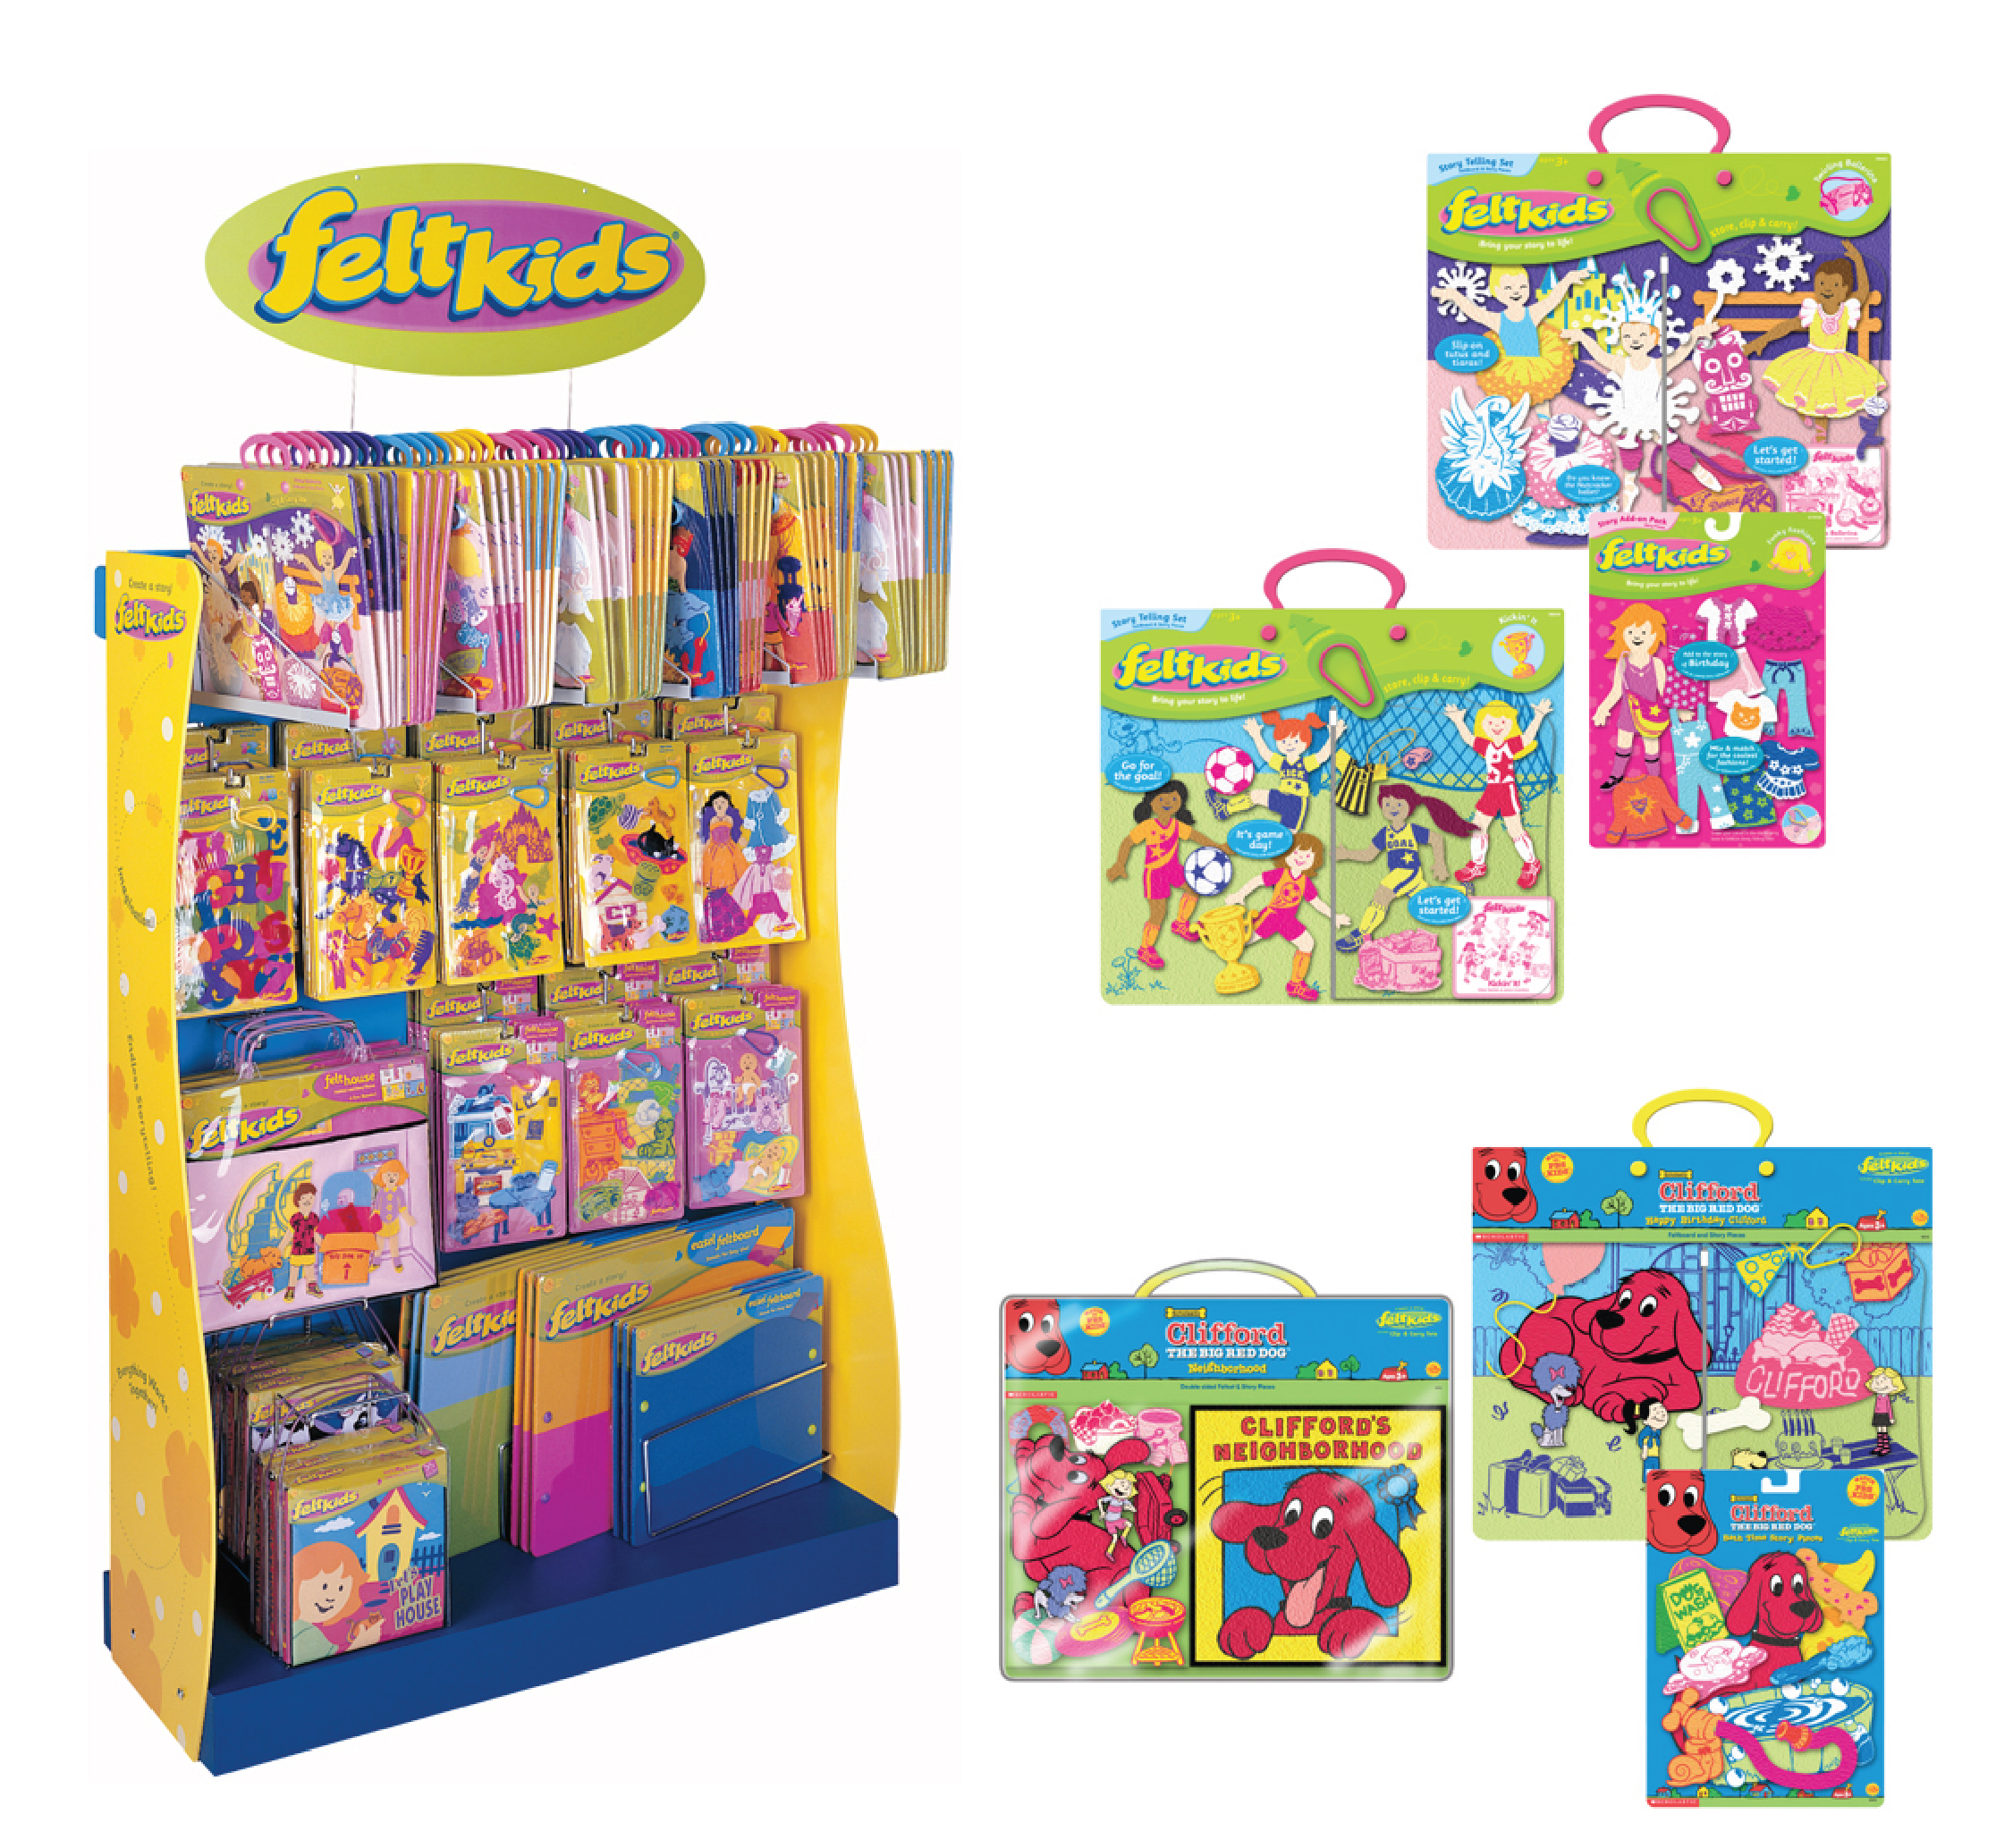 FeltKids Packaging